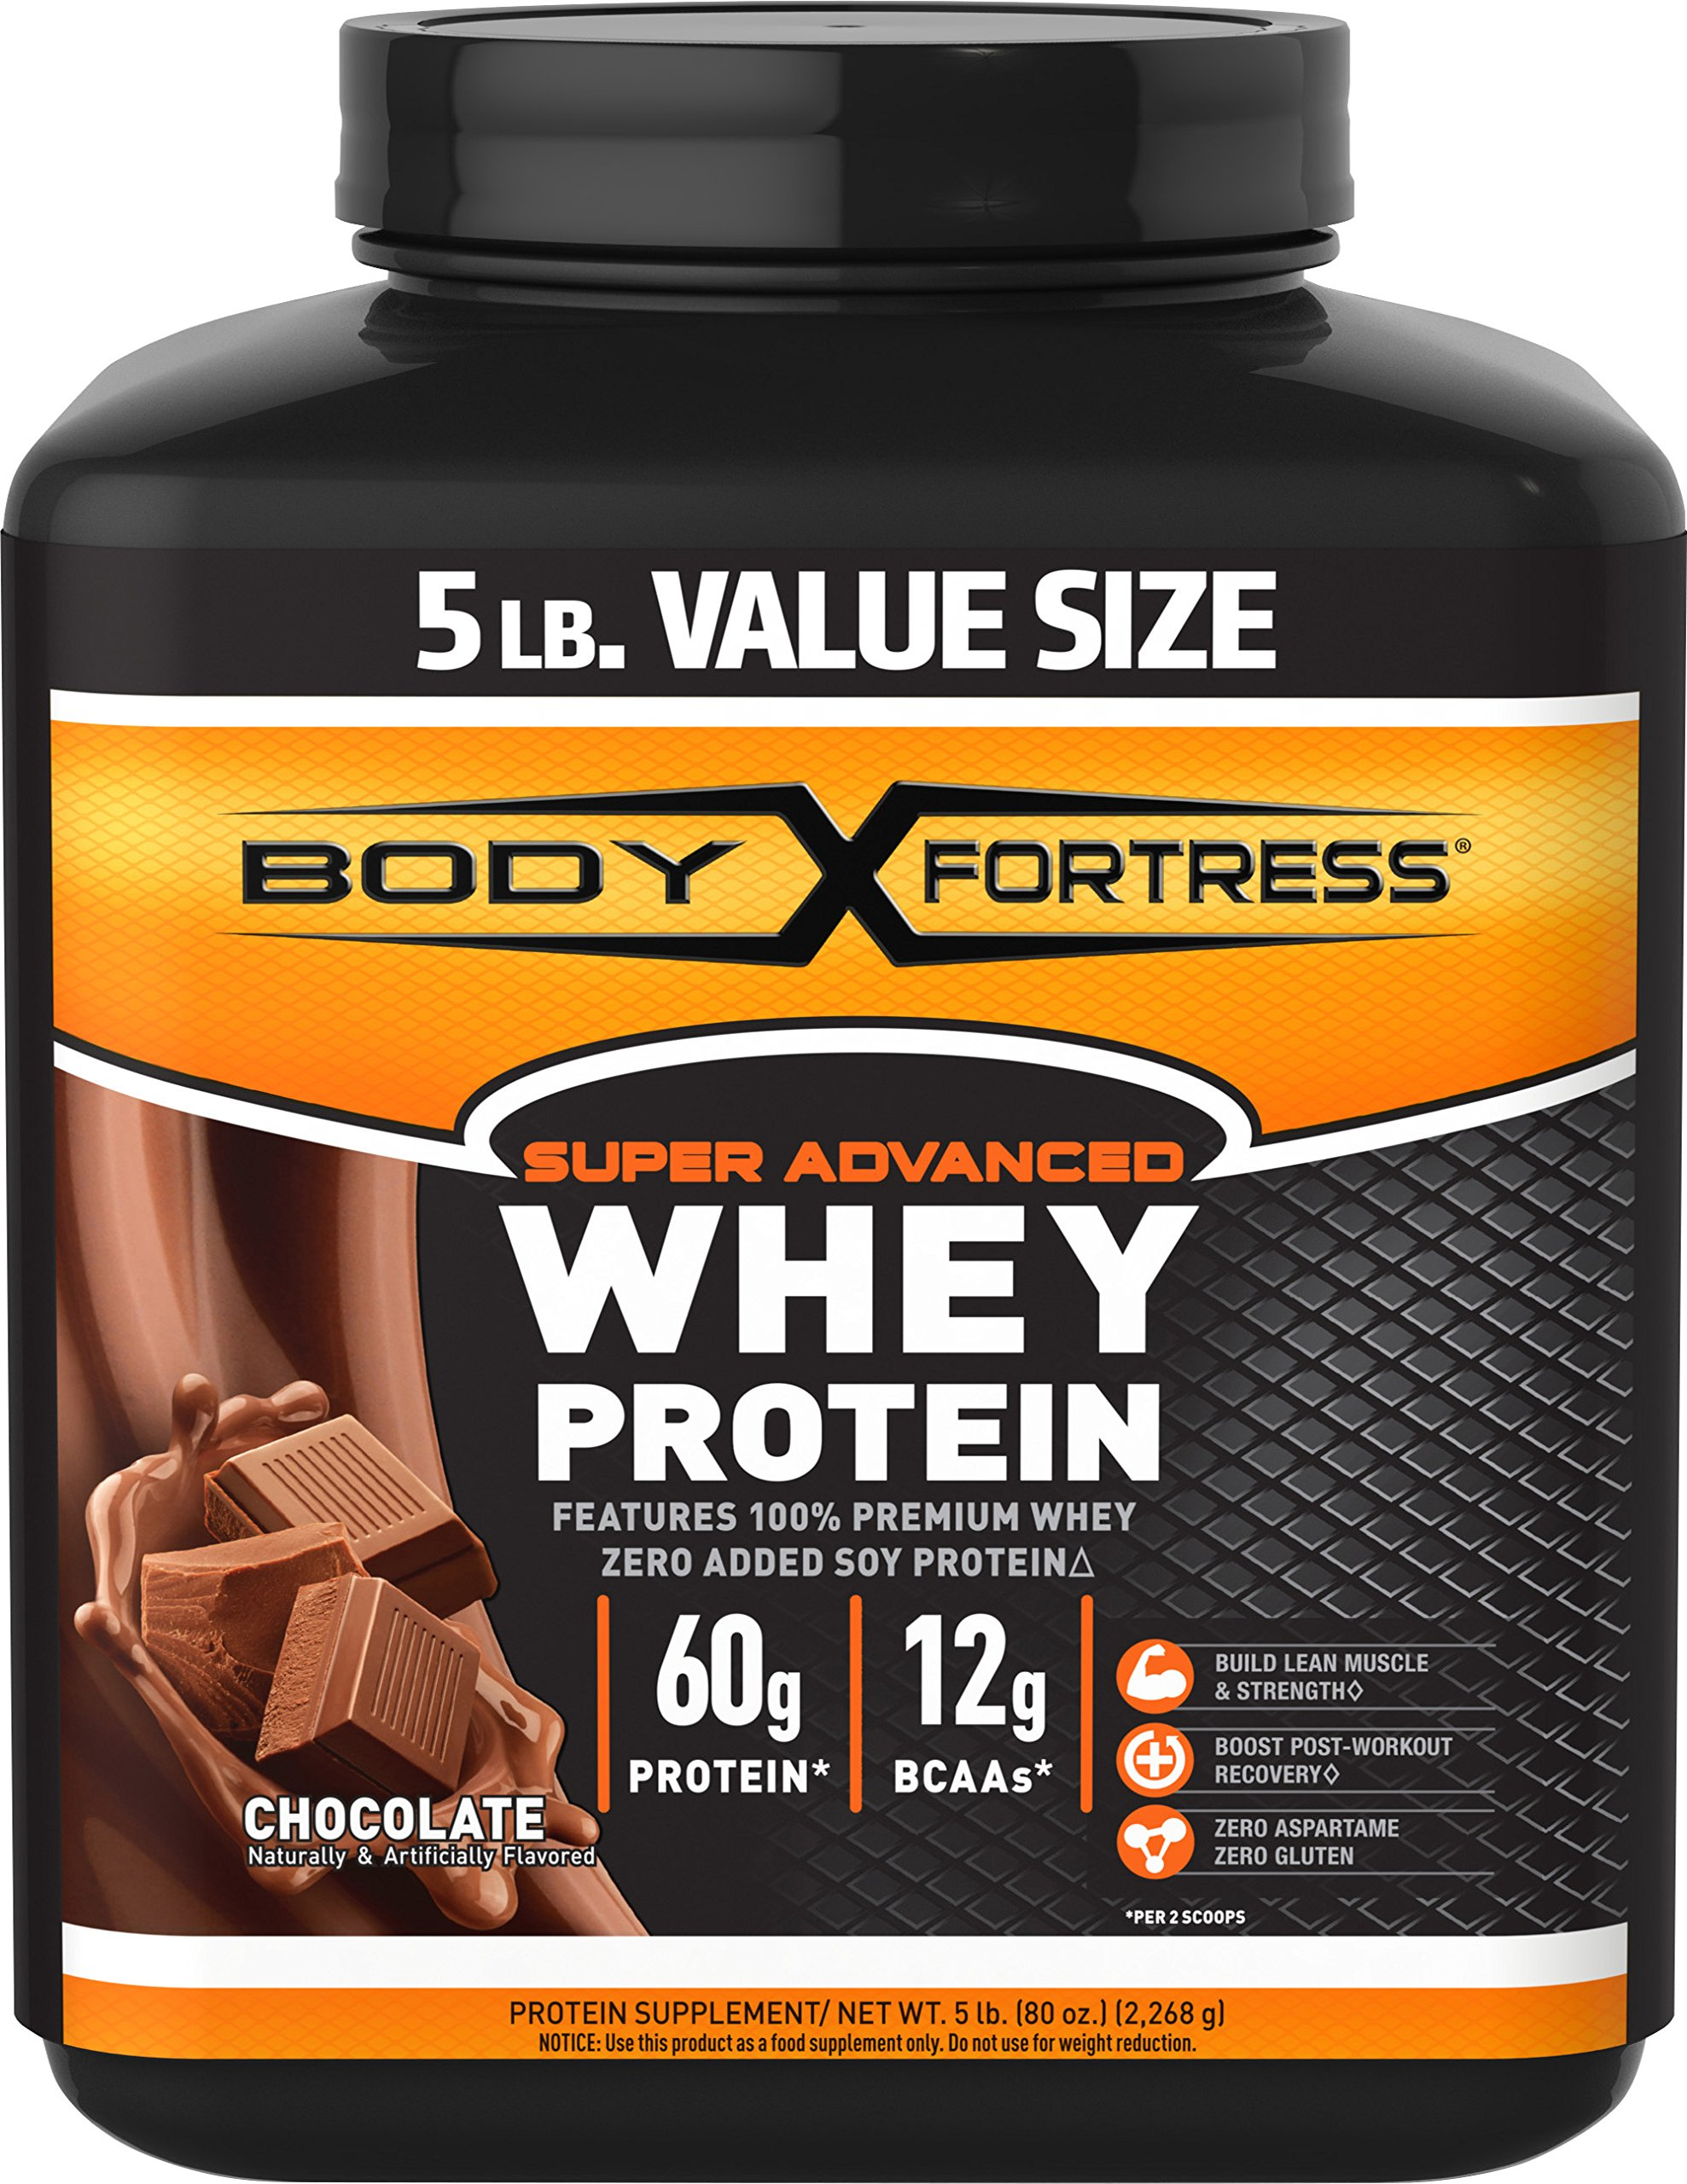 Body Fortress Super Advanced Whey Protein, Chocolate, 5 pounds Chocolate Protein Supplement Powder to Help Build Lean Muscle and Strength